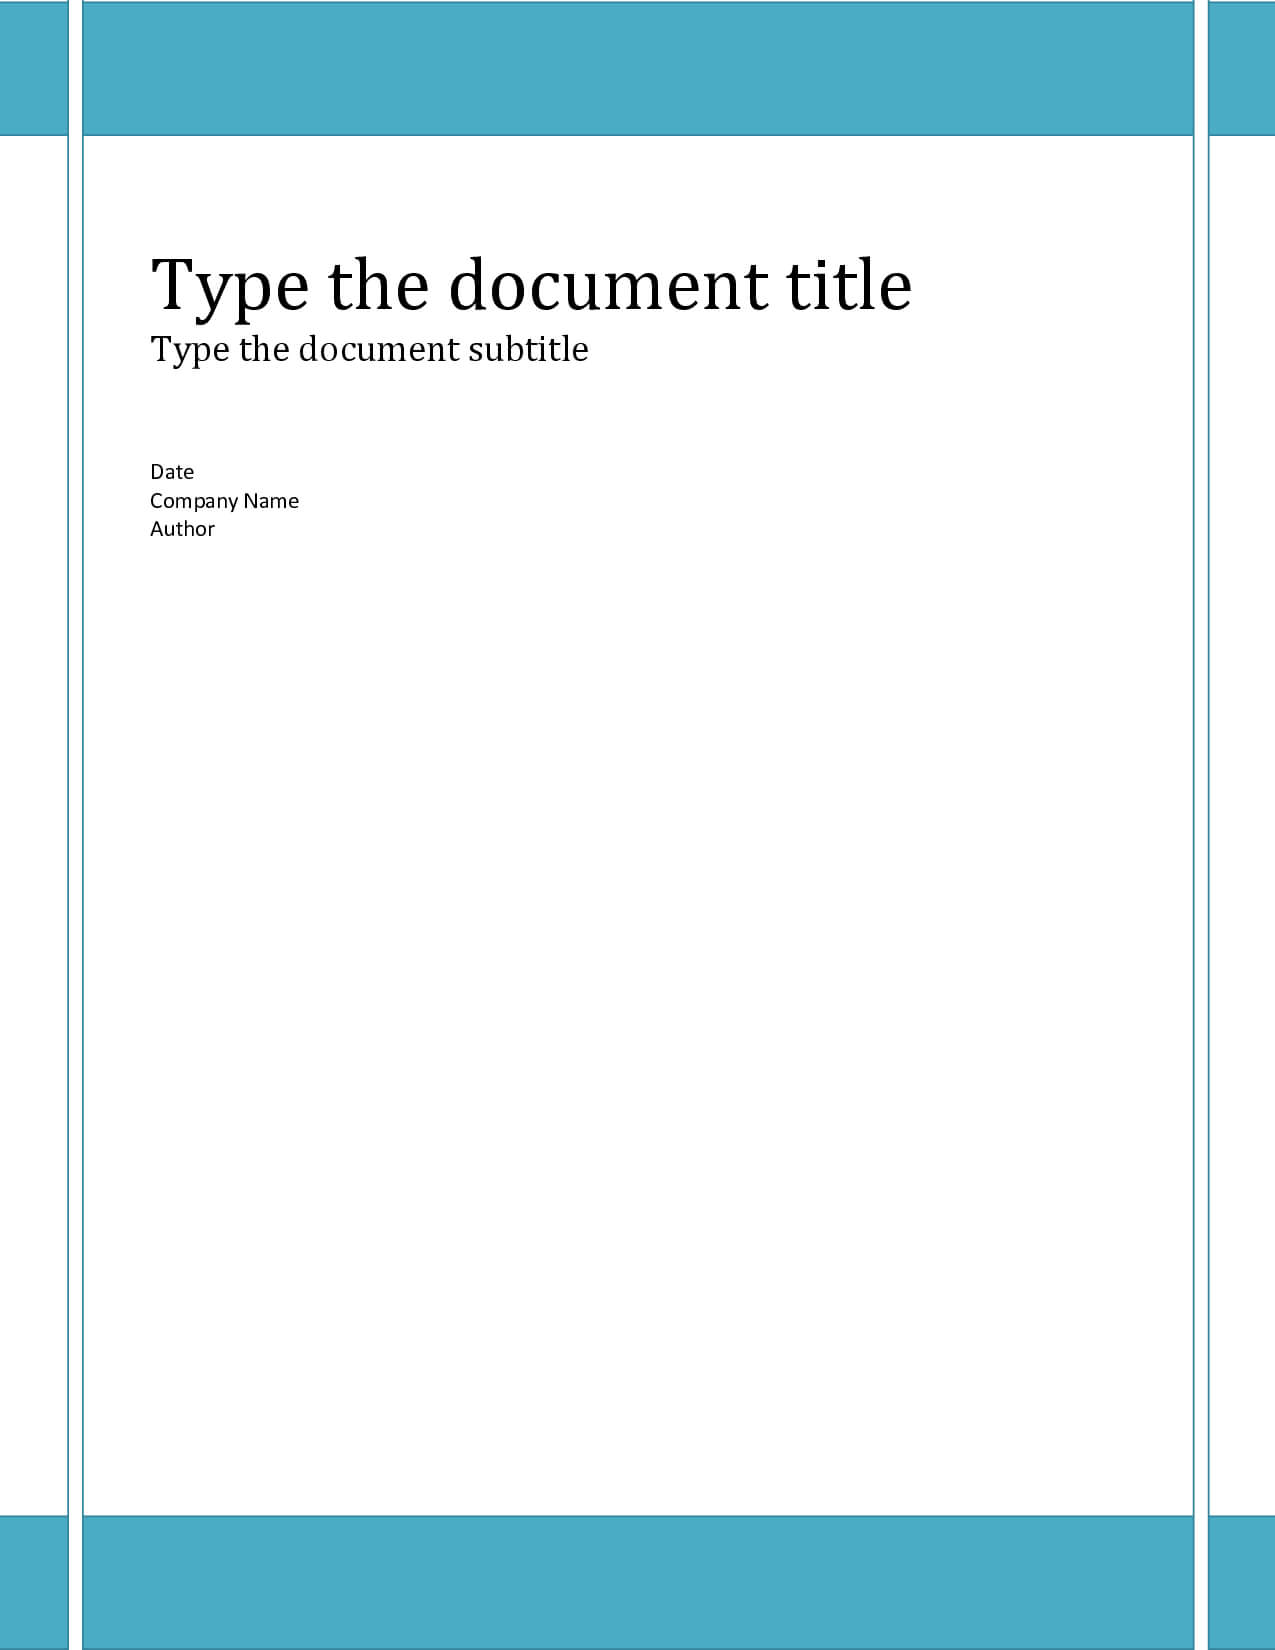 Business Letter Template Office 2010   Sample Customer with Cover Page Of Report Template In Word